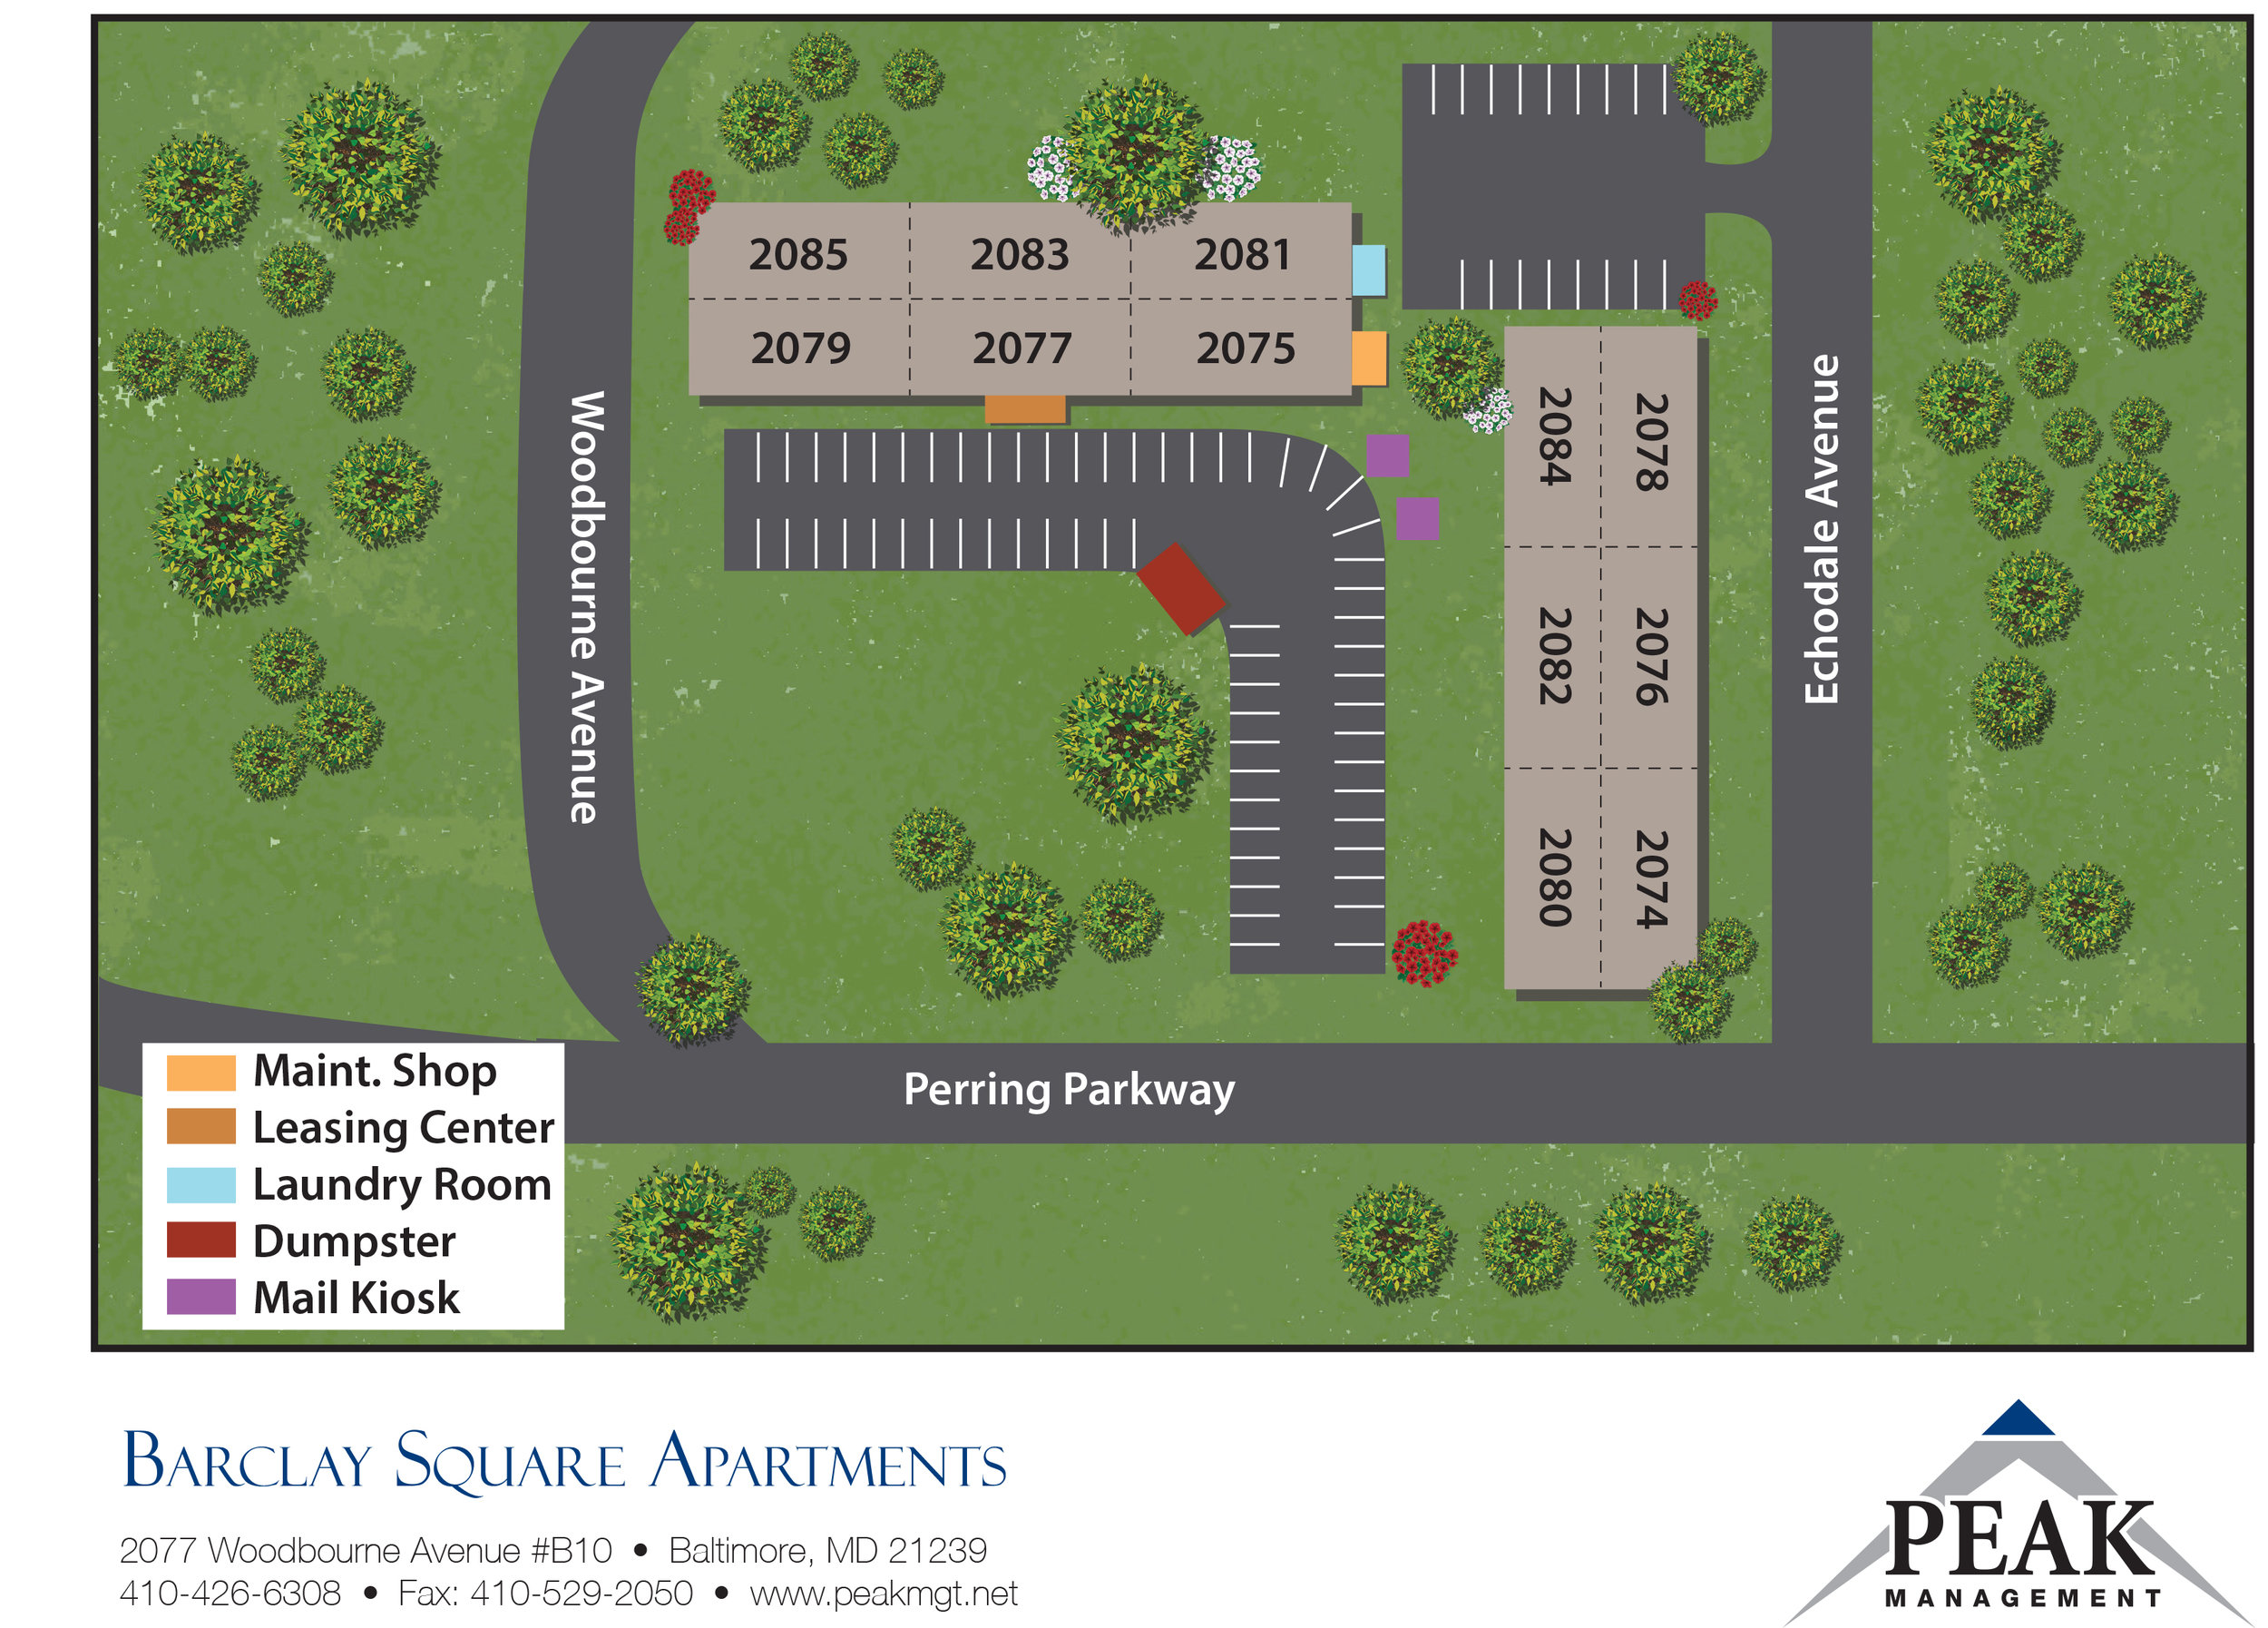 Barclay Square Apartments | Baltimore, MD  - Site Map 1